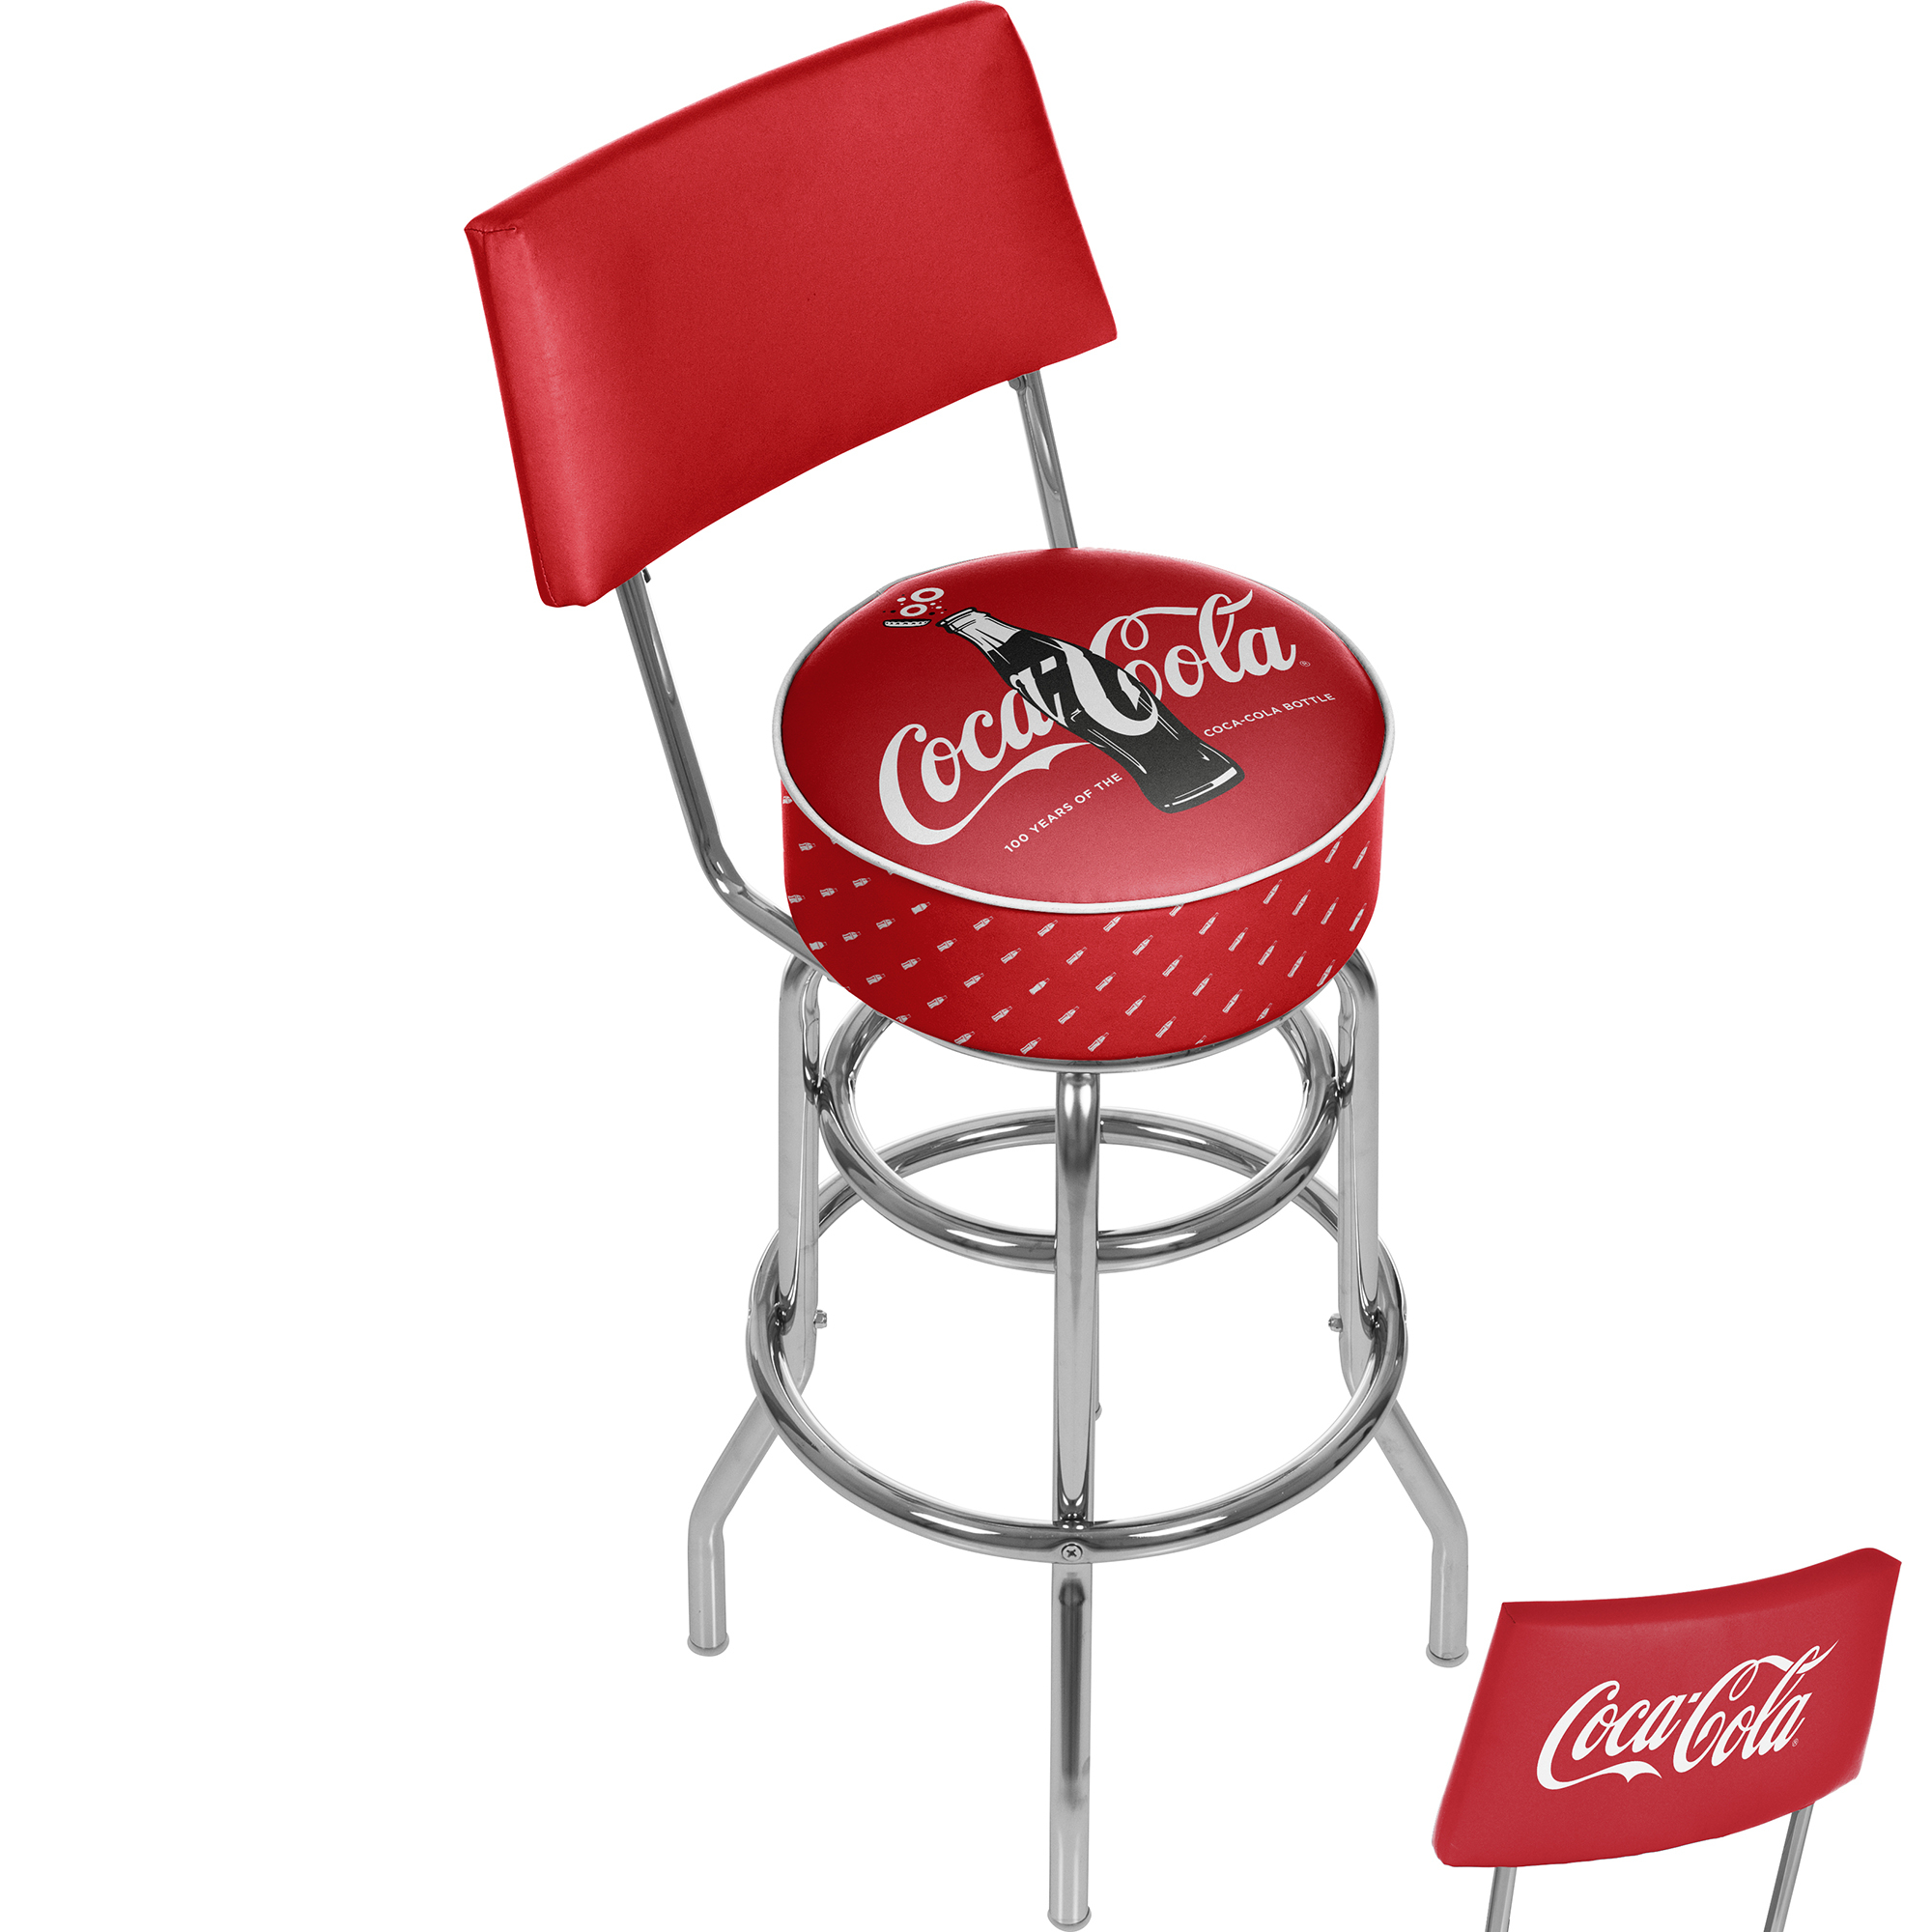 Coca-Cola Stool with Back - 100th Anniversary of the Coca-Cola Bottle